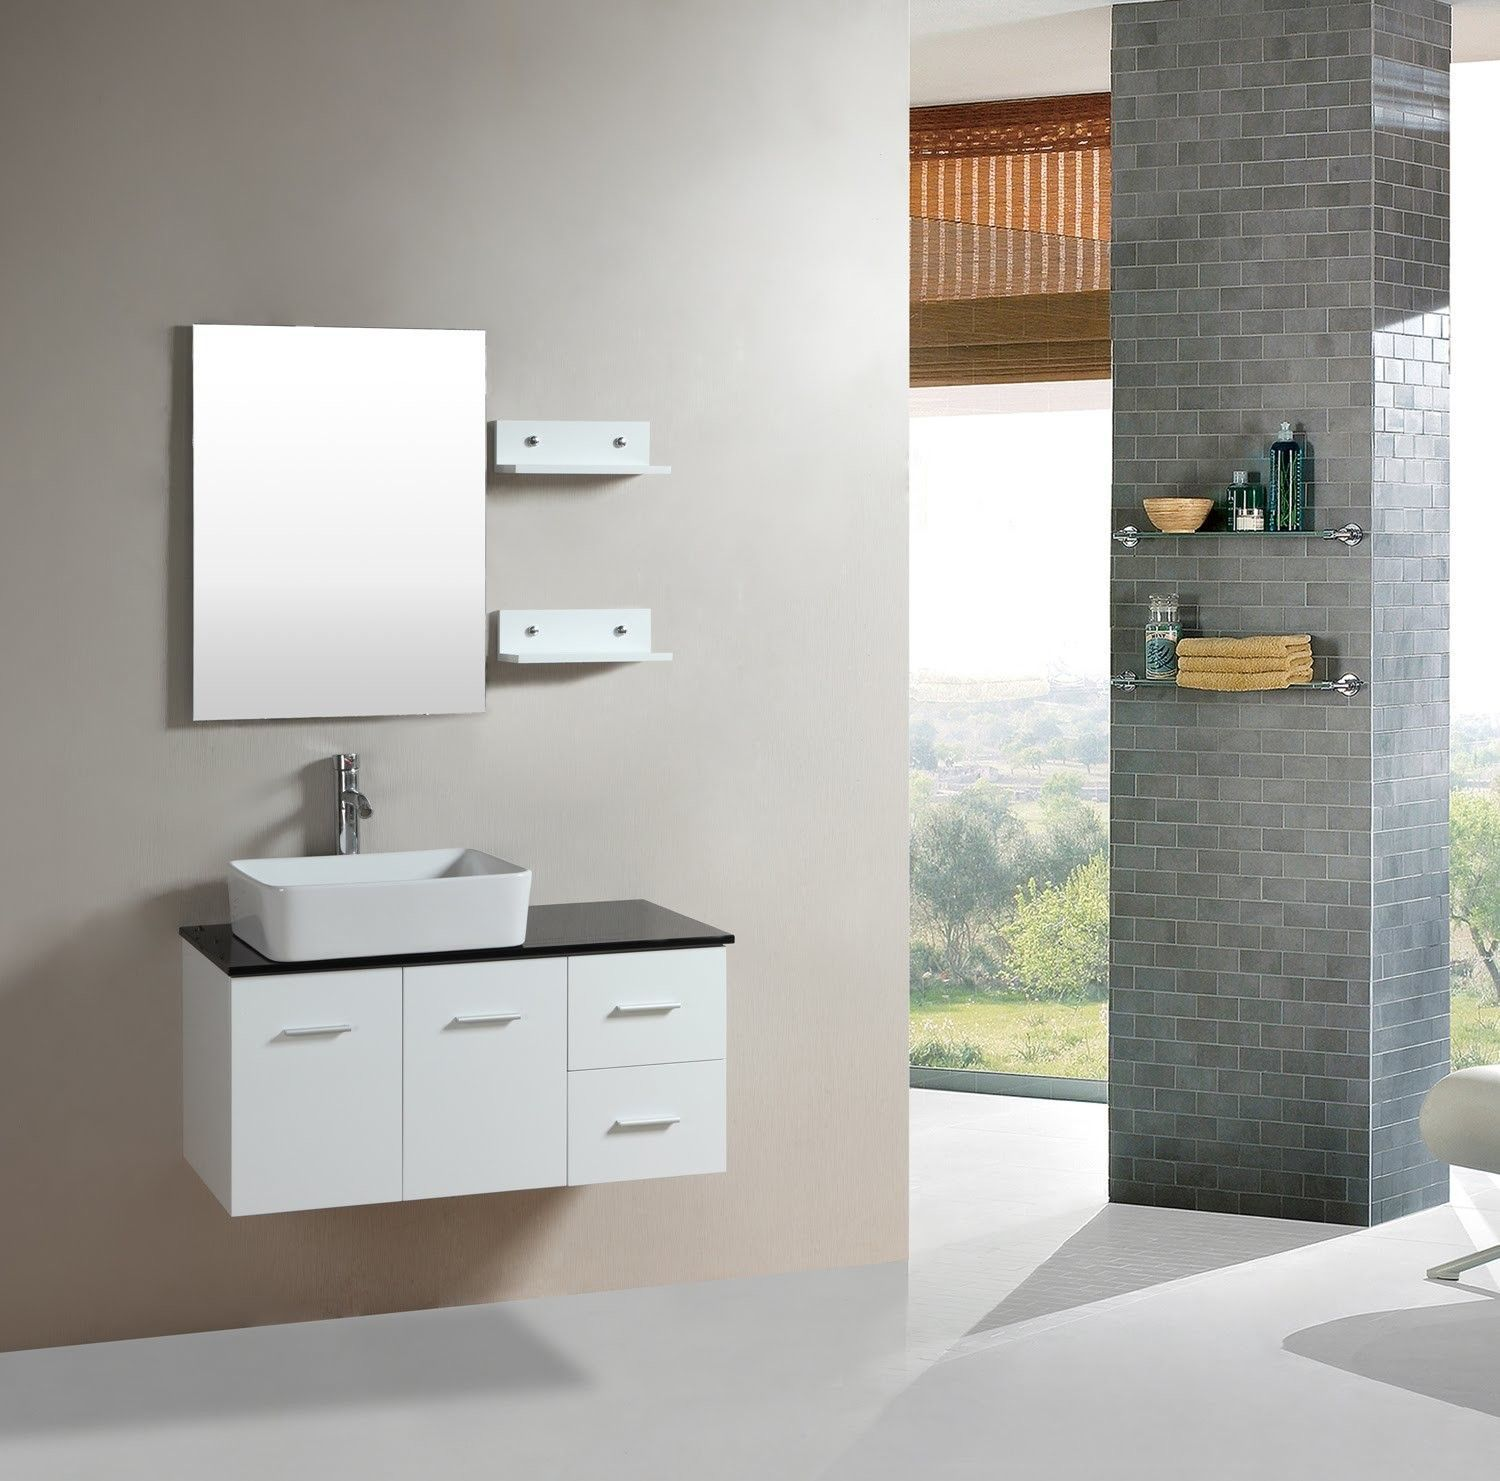 36 Wall Mounted Single Bathroom Vanity Set With Mirror Products